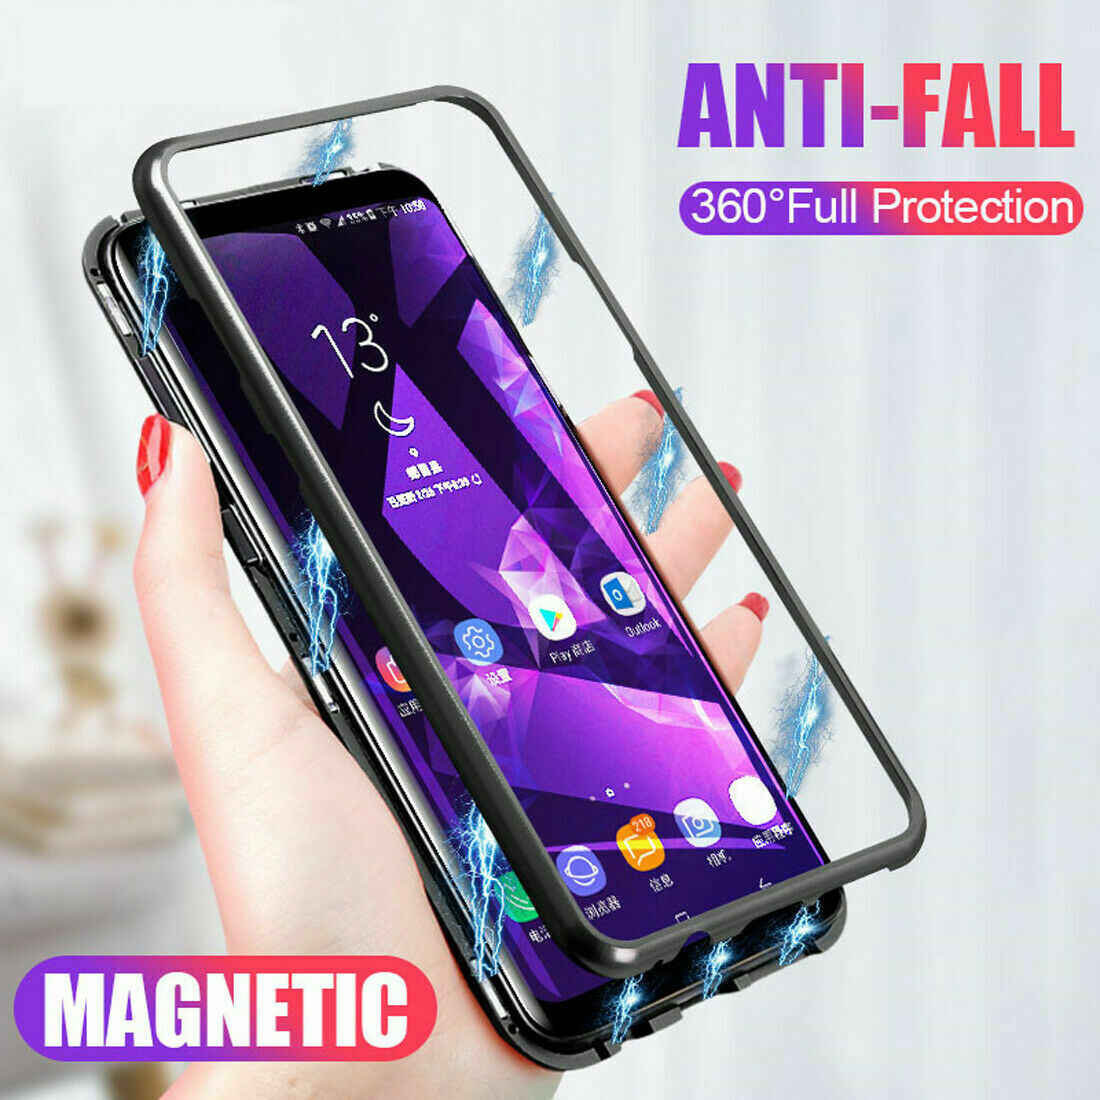 360 Magnetic Adsorption Case for Huawei P30 P20 Lite P10 Plus Nova 2S 2i 3 3i 3e 4 4e Y6 Prime 2018 Y9 2019 Mate 10 20 20X Cases